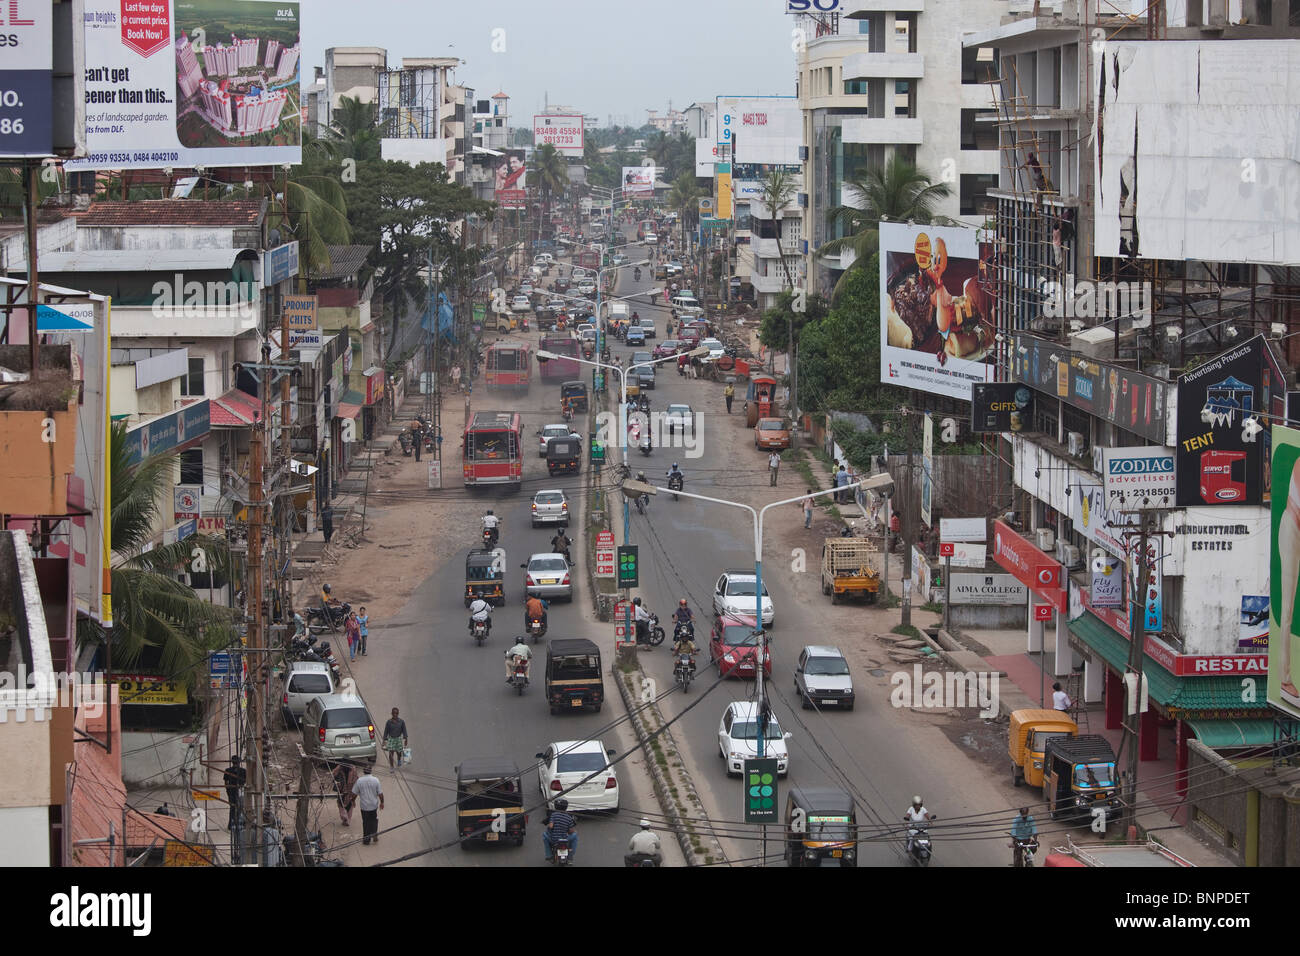 Too much motorized traffic in India causes chaos on the inadequate road system. Kochi, Kerala, India - Stock Image